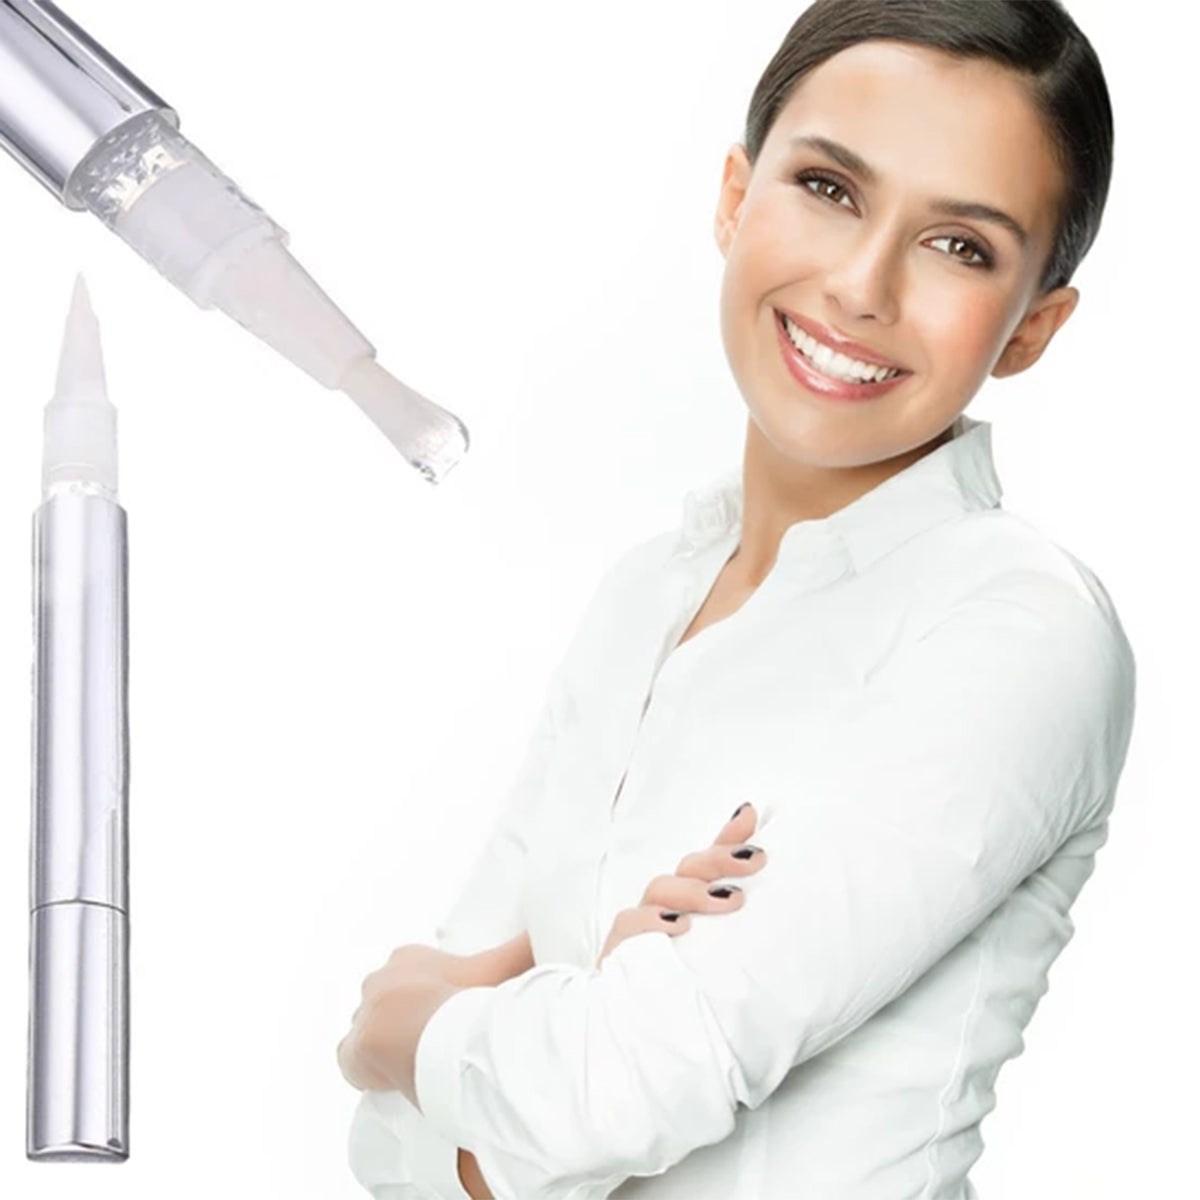 Bleach Removal teeth whitening pen